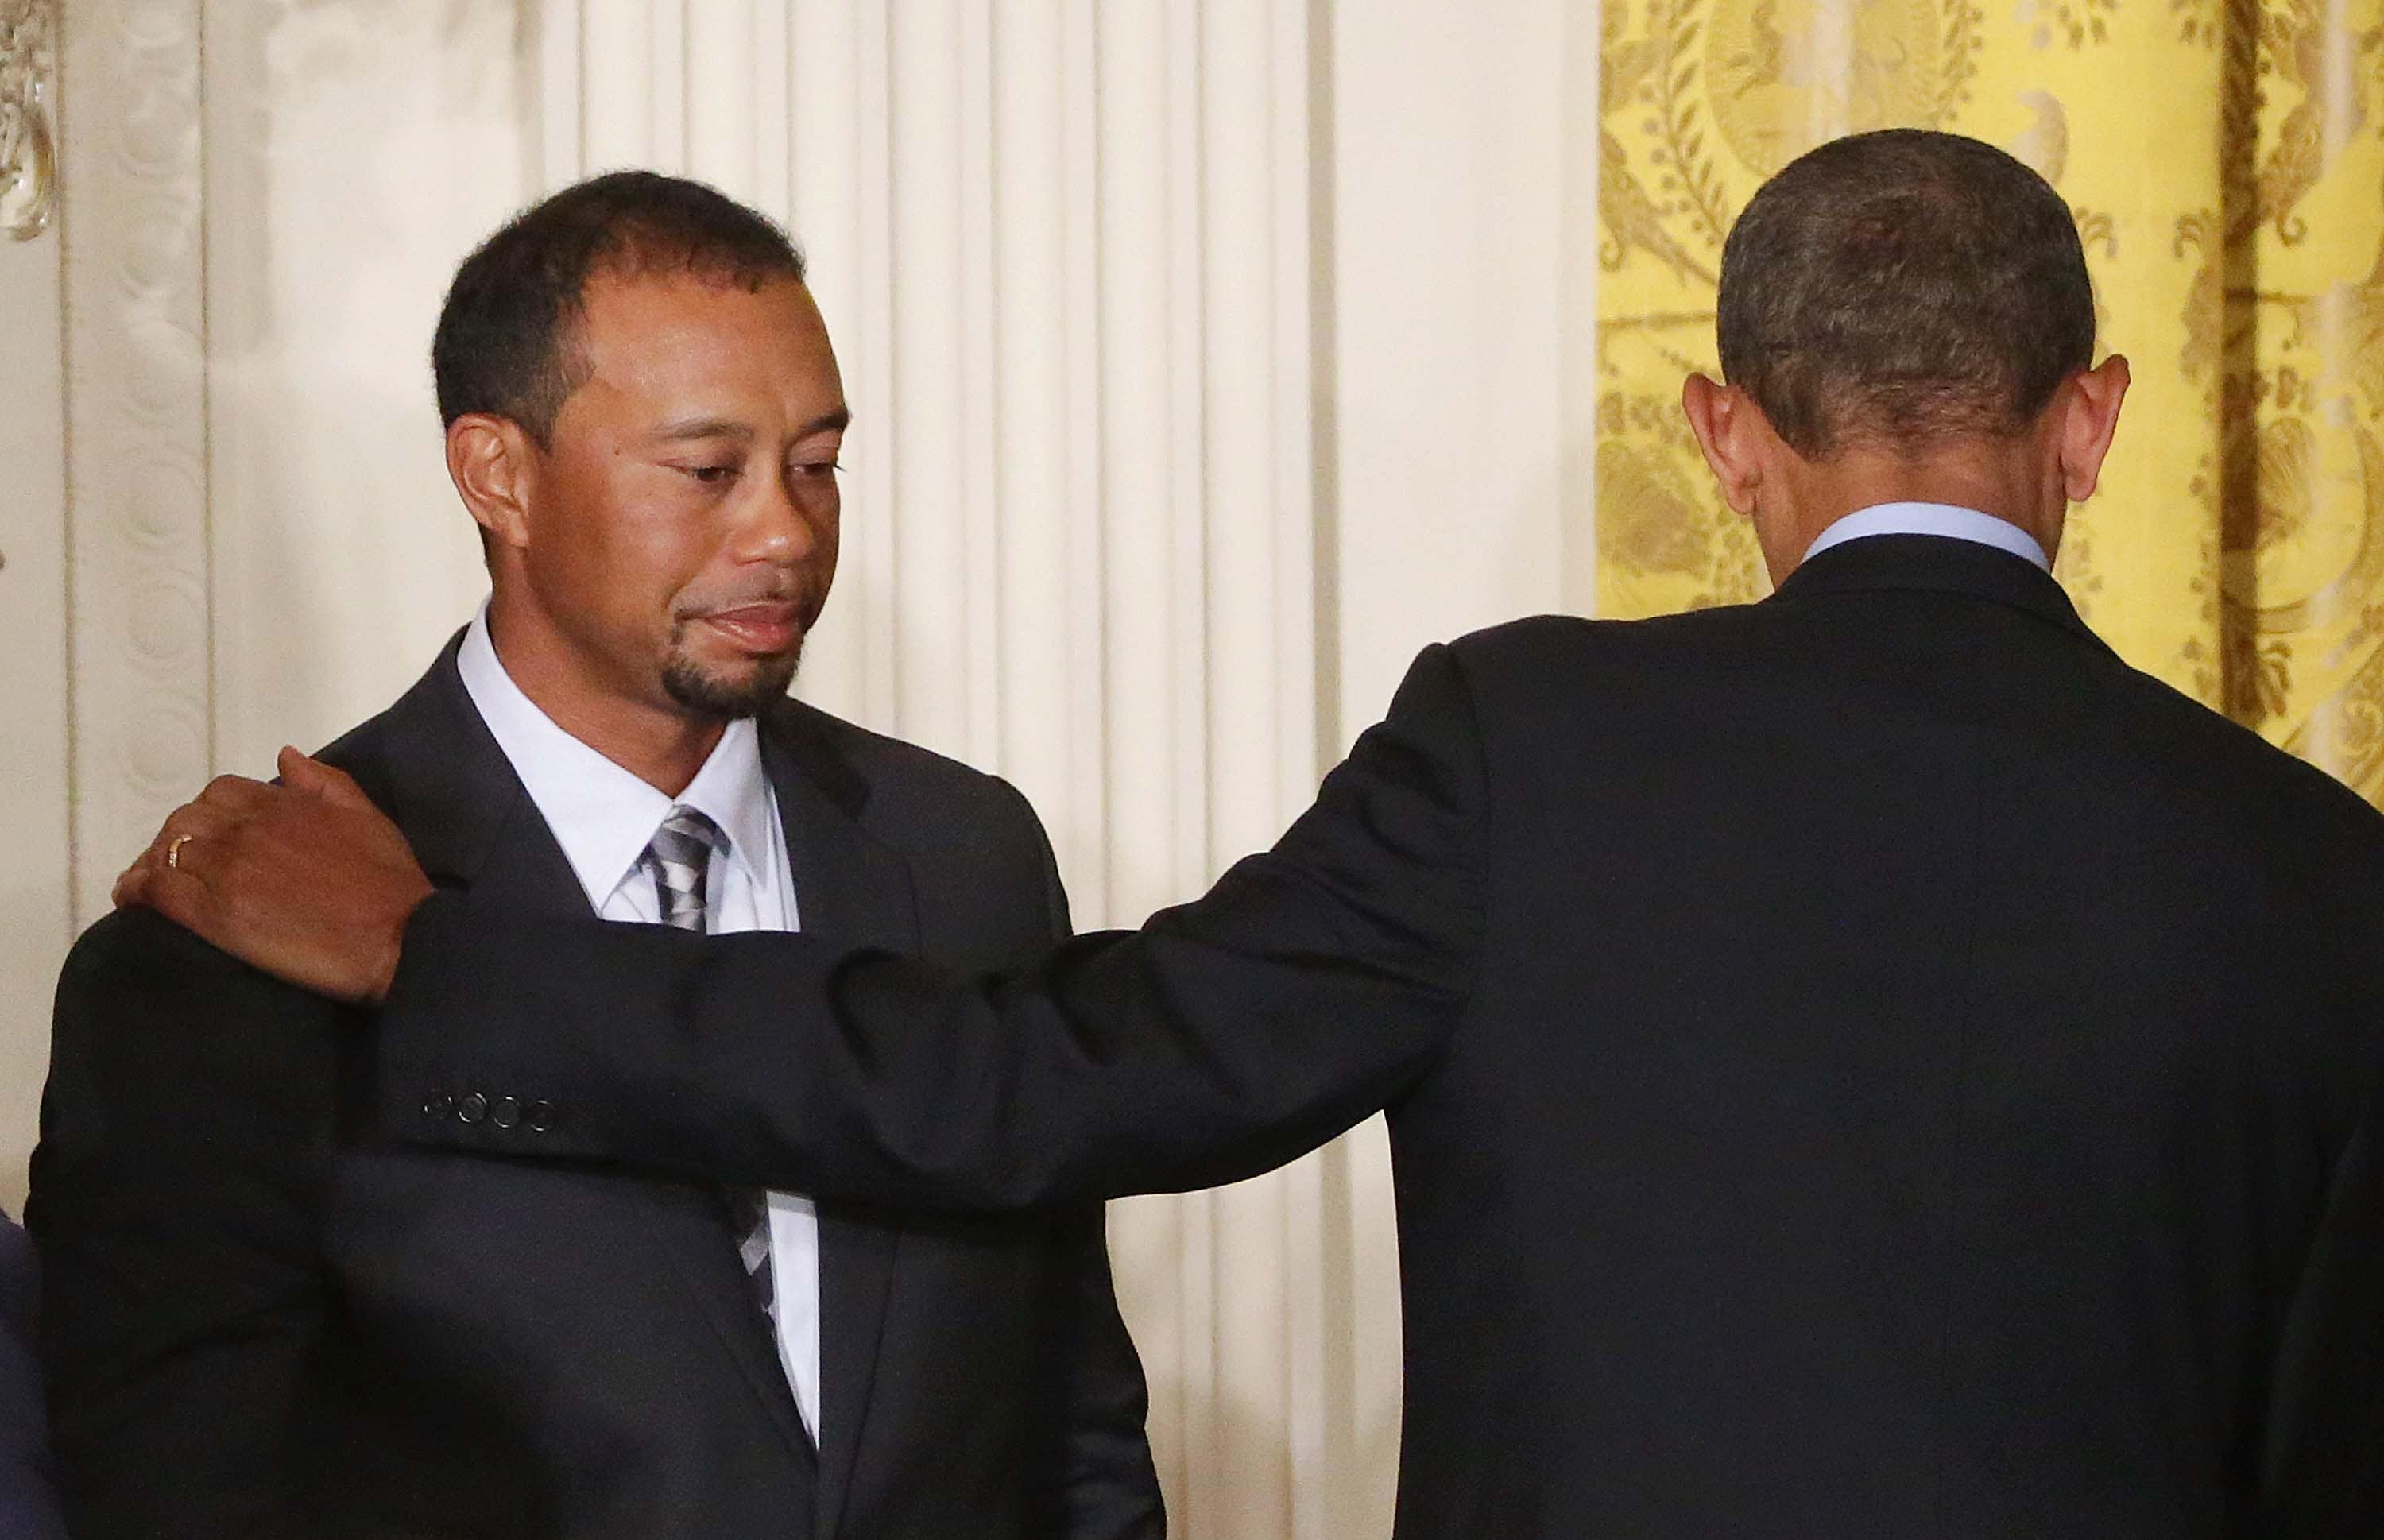 President Obama and Tiger Woods